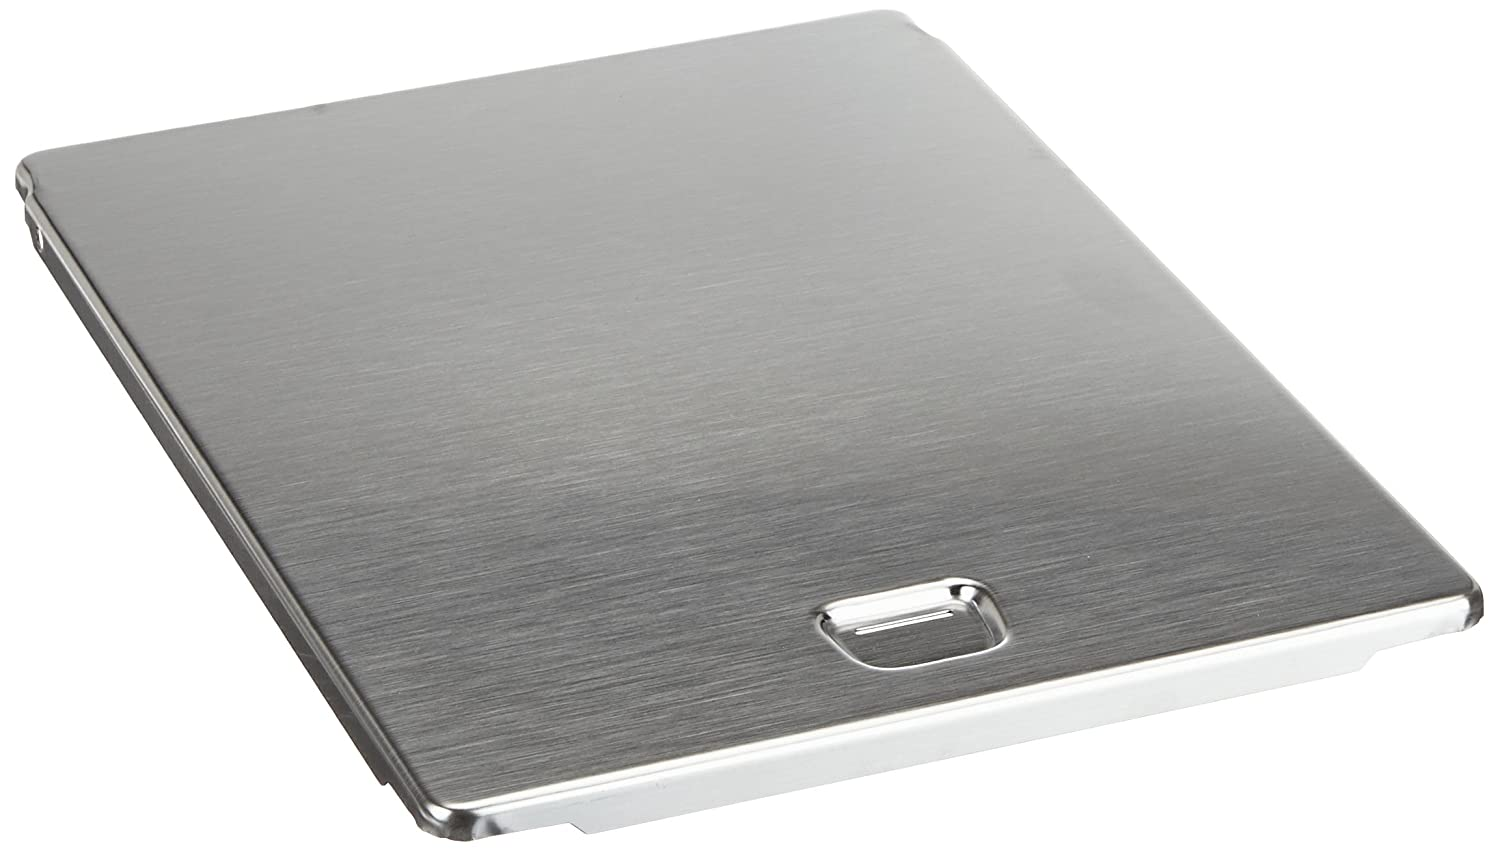 Frigidaire 3201527 Range/Stove/Oven Grille or Griddle Cover by Frigidaire B00PU0PYWE